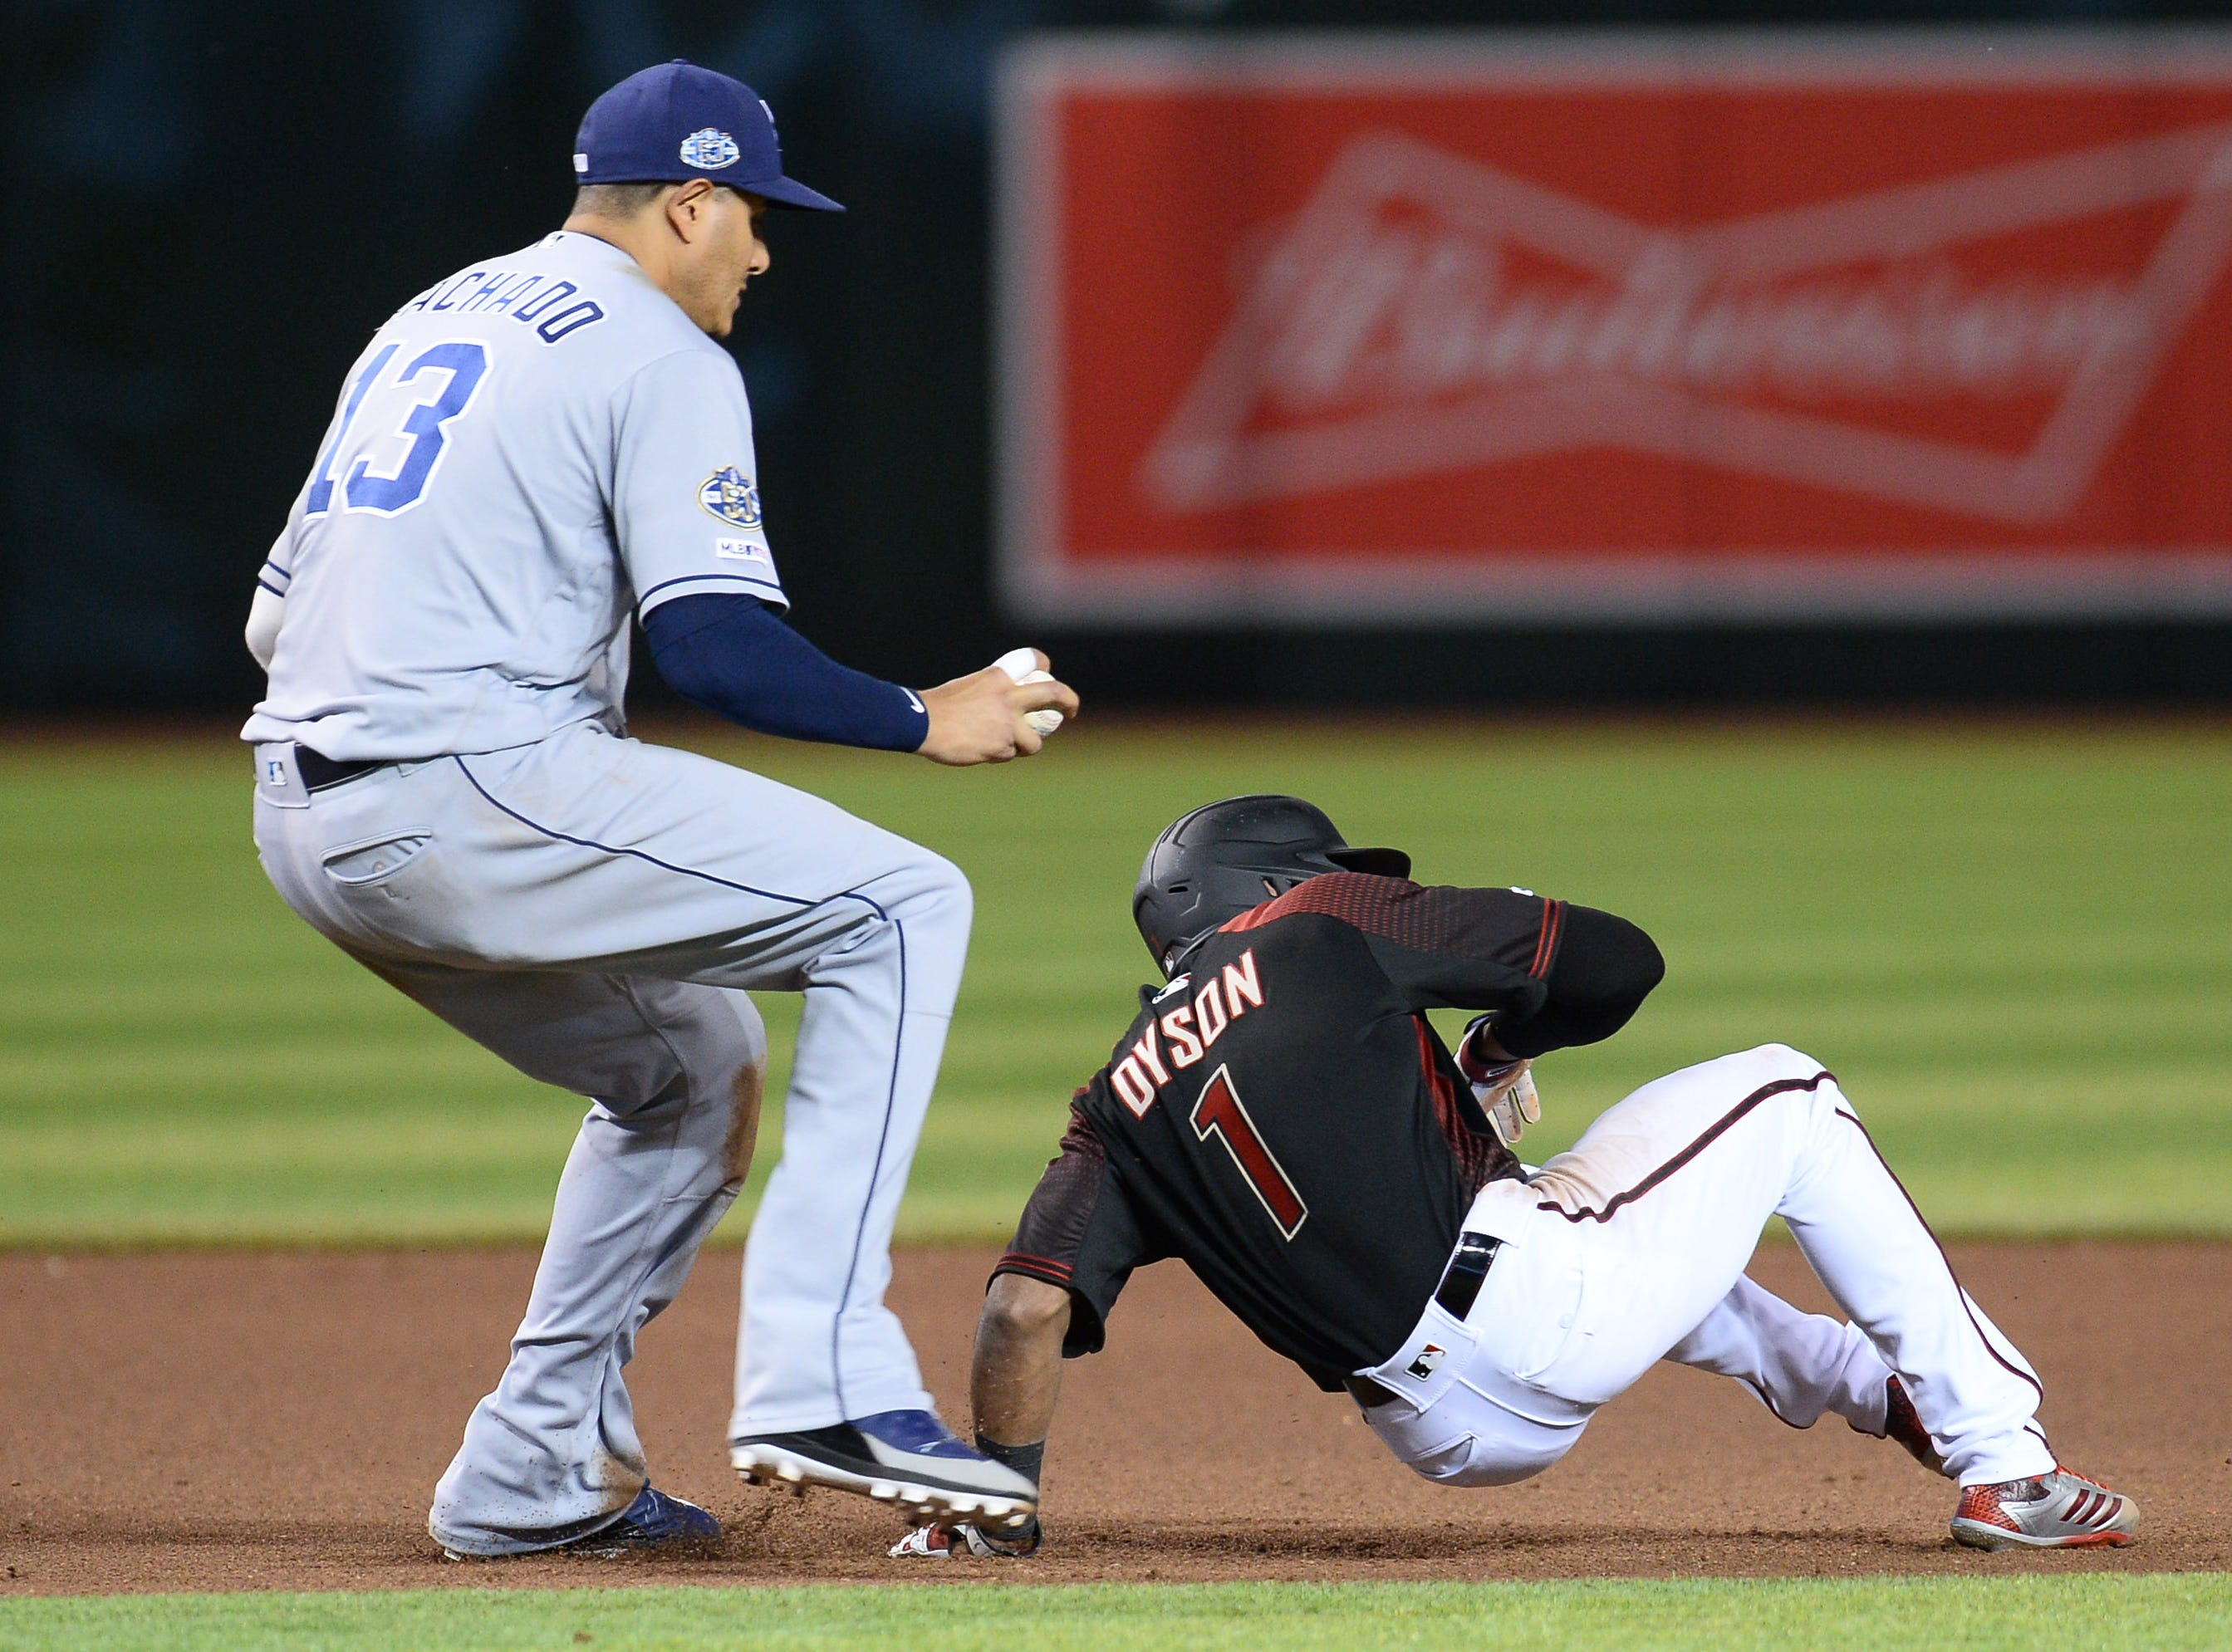 Apr 13, 2019; Phoenix, AZ, USA; San Diego Padres shortstop Manny Machado (13) tags out Arizona Diamondbacks center fielder Jarrod Dyson (1) during a run down during the seventh inning at Chase Field. Mandatory Credit: Joe Camporeale-USA TODAY Sports